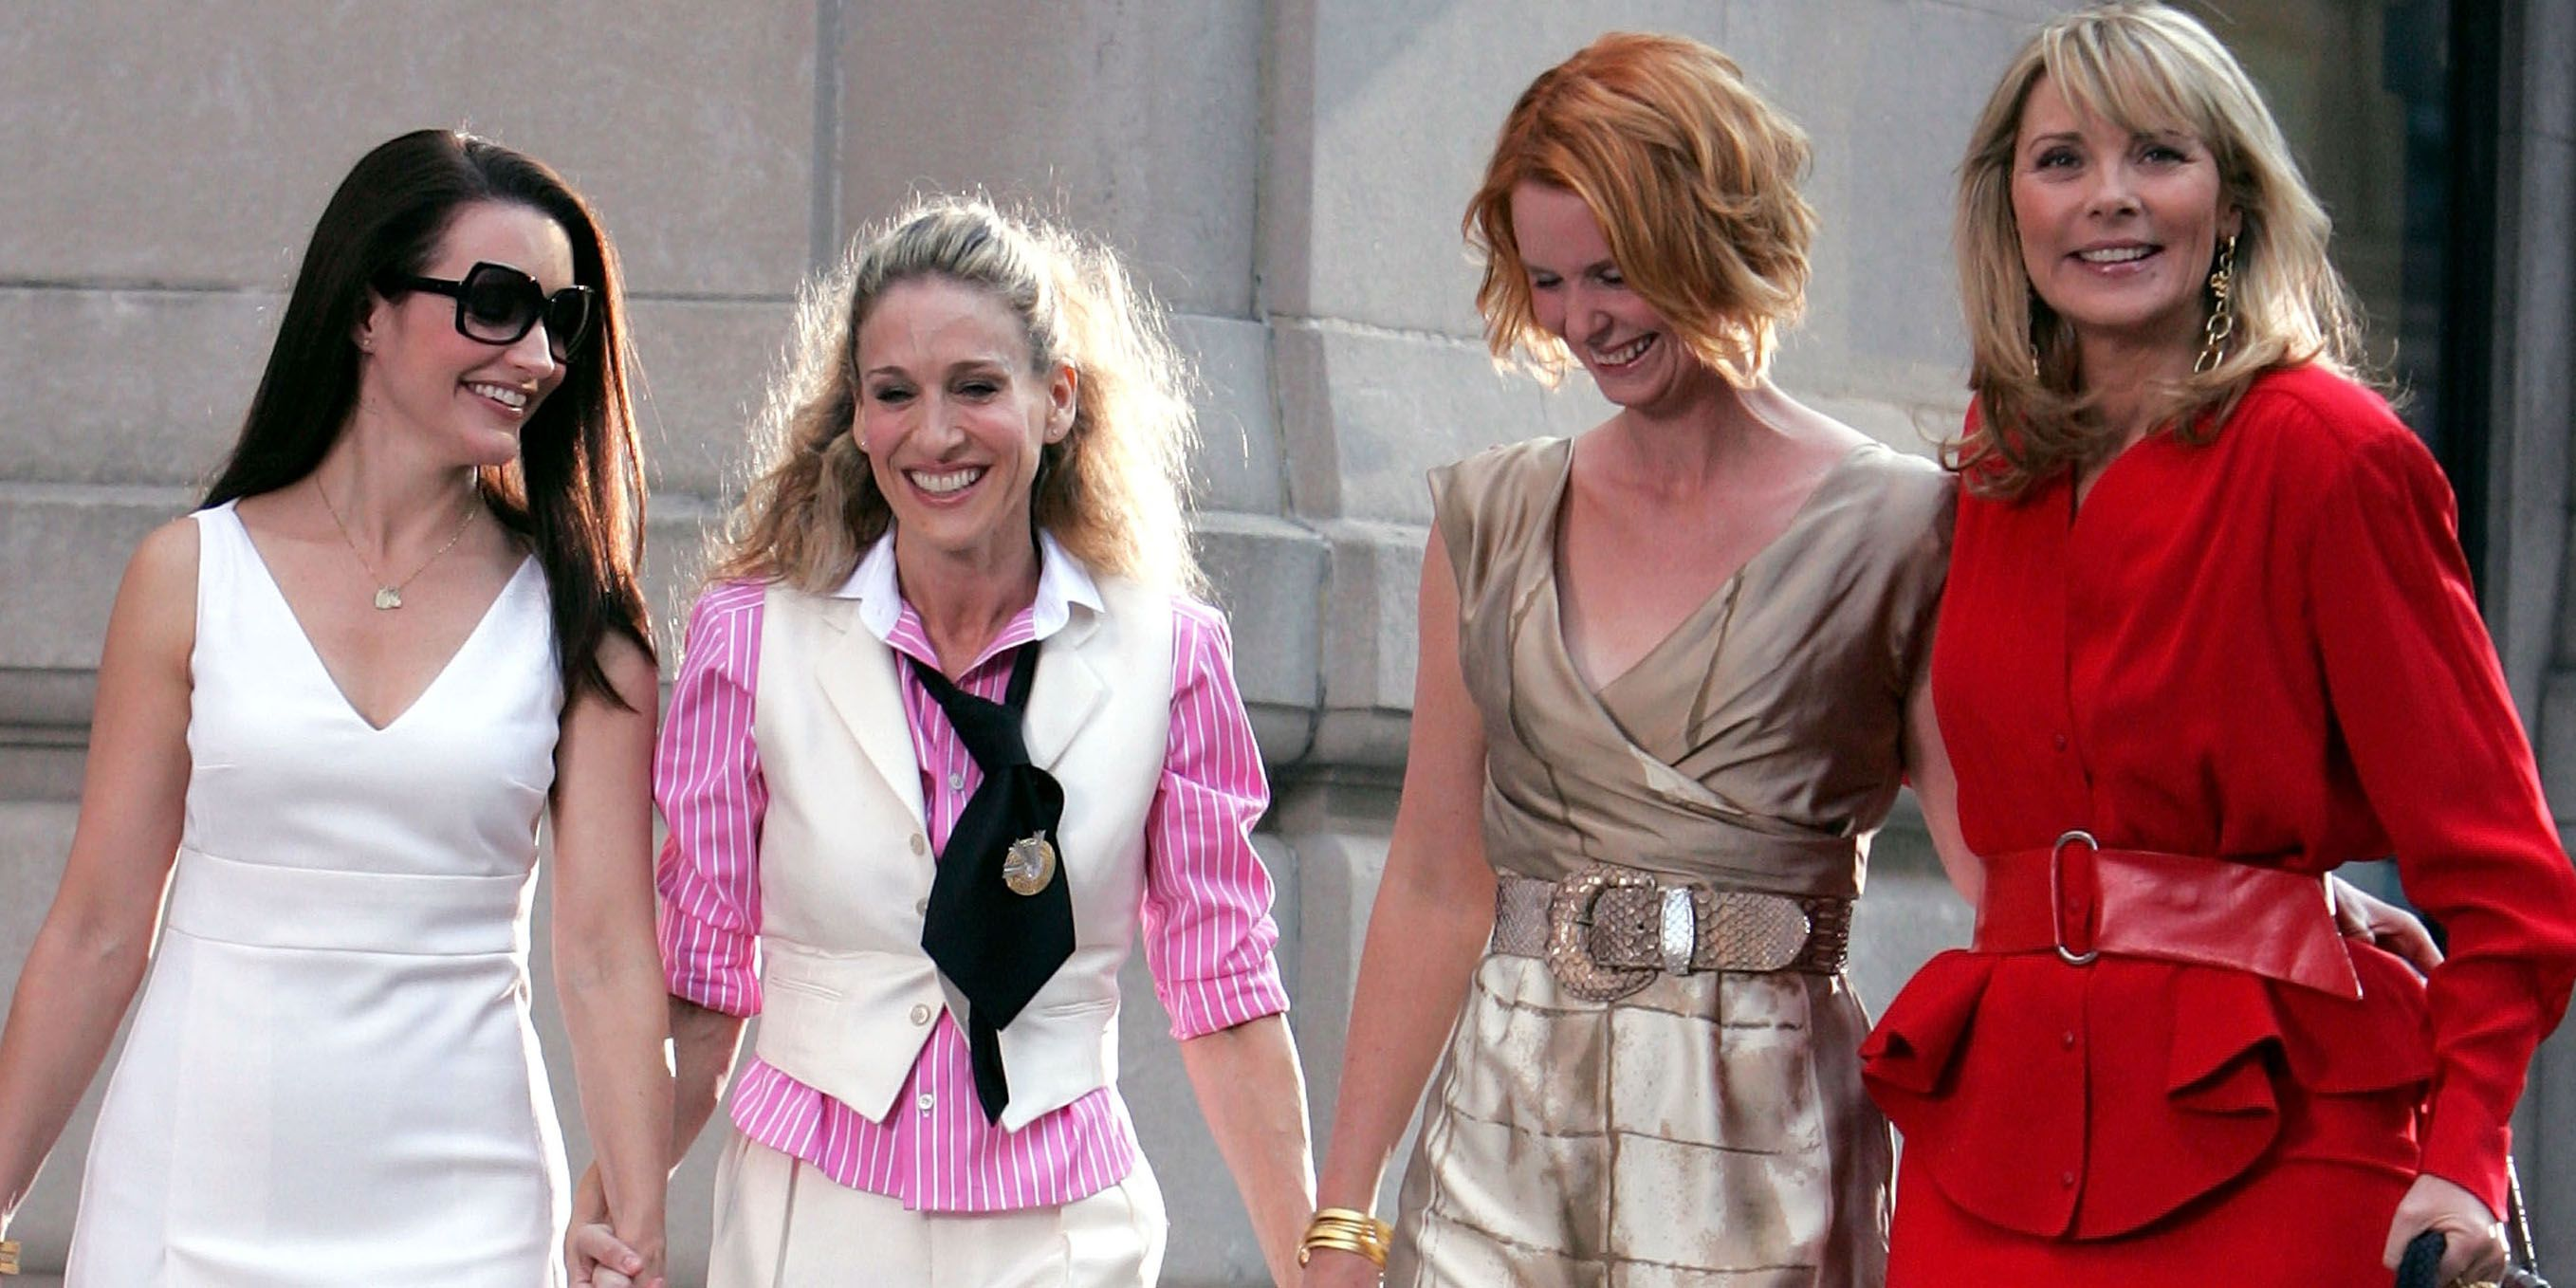 Sex And The Citys Kristin Davis Reignites The Casts Feud With Kim Cattrall And We